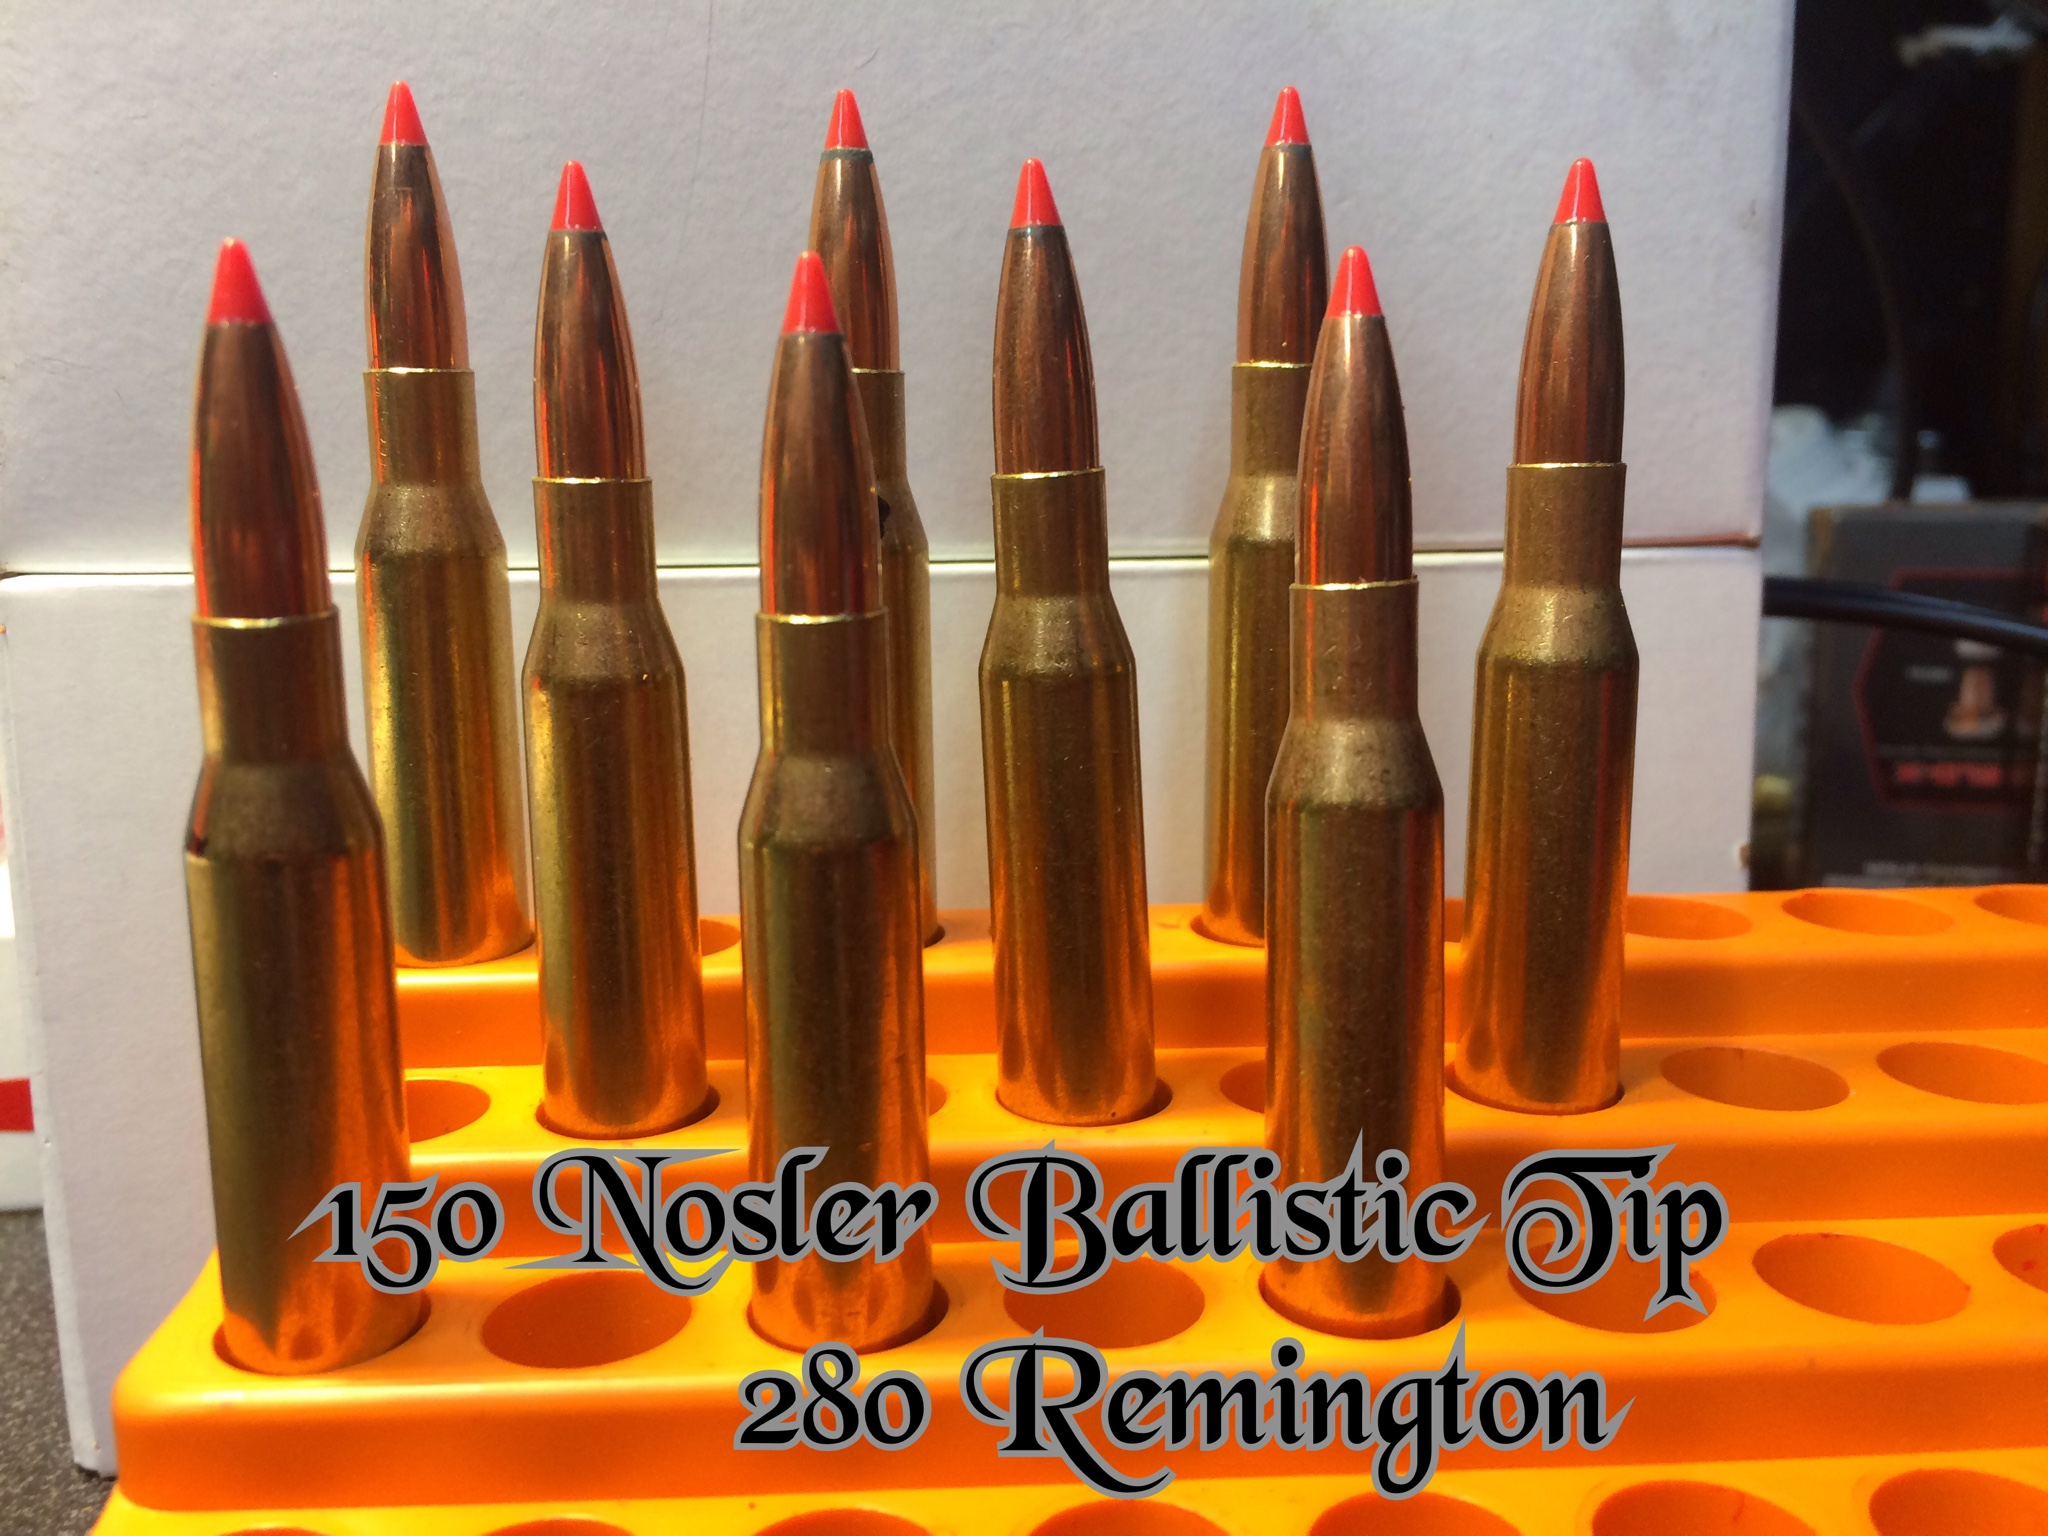 Nosler Reloading Forum • View topic - RL 22 280 Rem